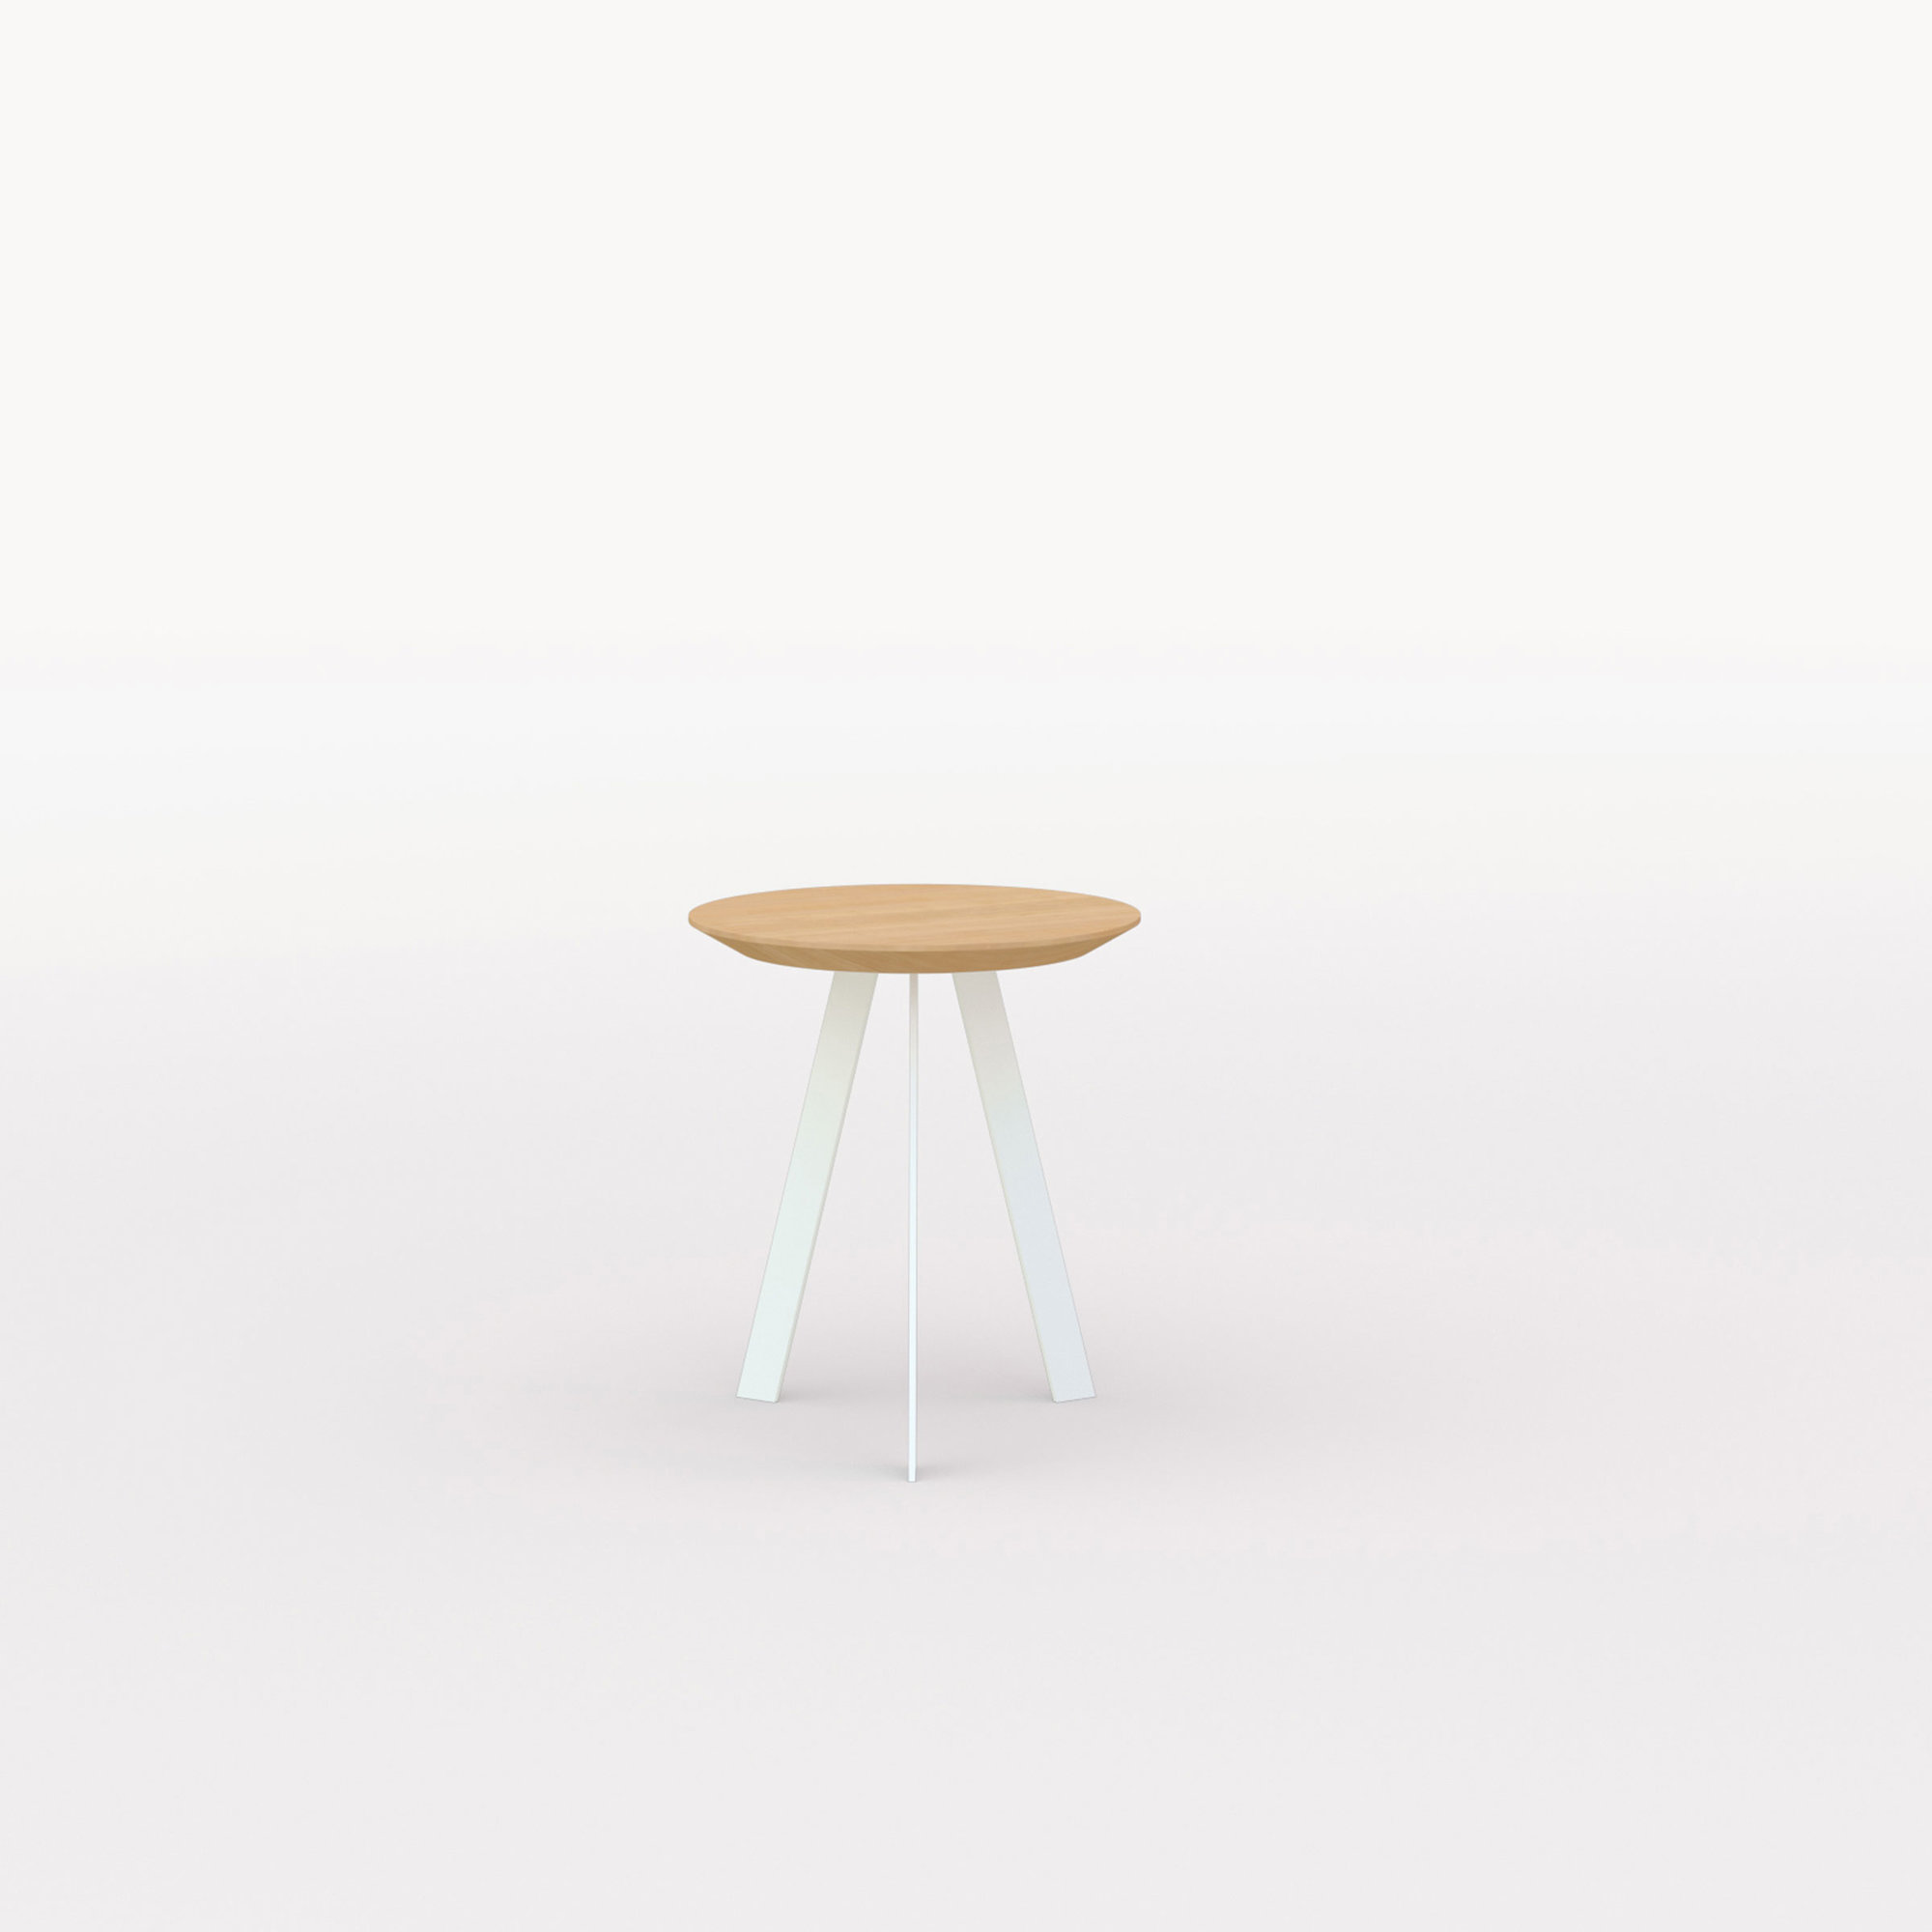 Design salontafel | New Co Coffee Table 40 Round White | Oak hardwax oil natural 3062 | Studio HENK | Listing_image